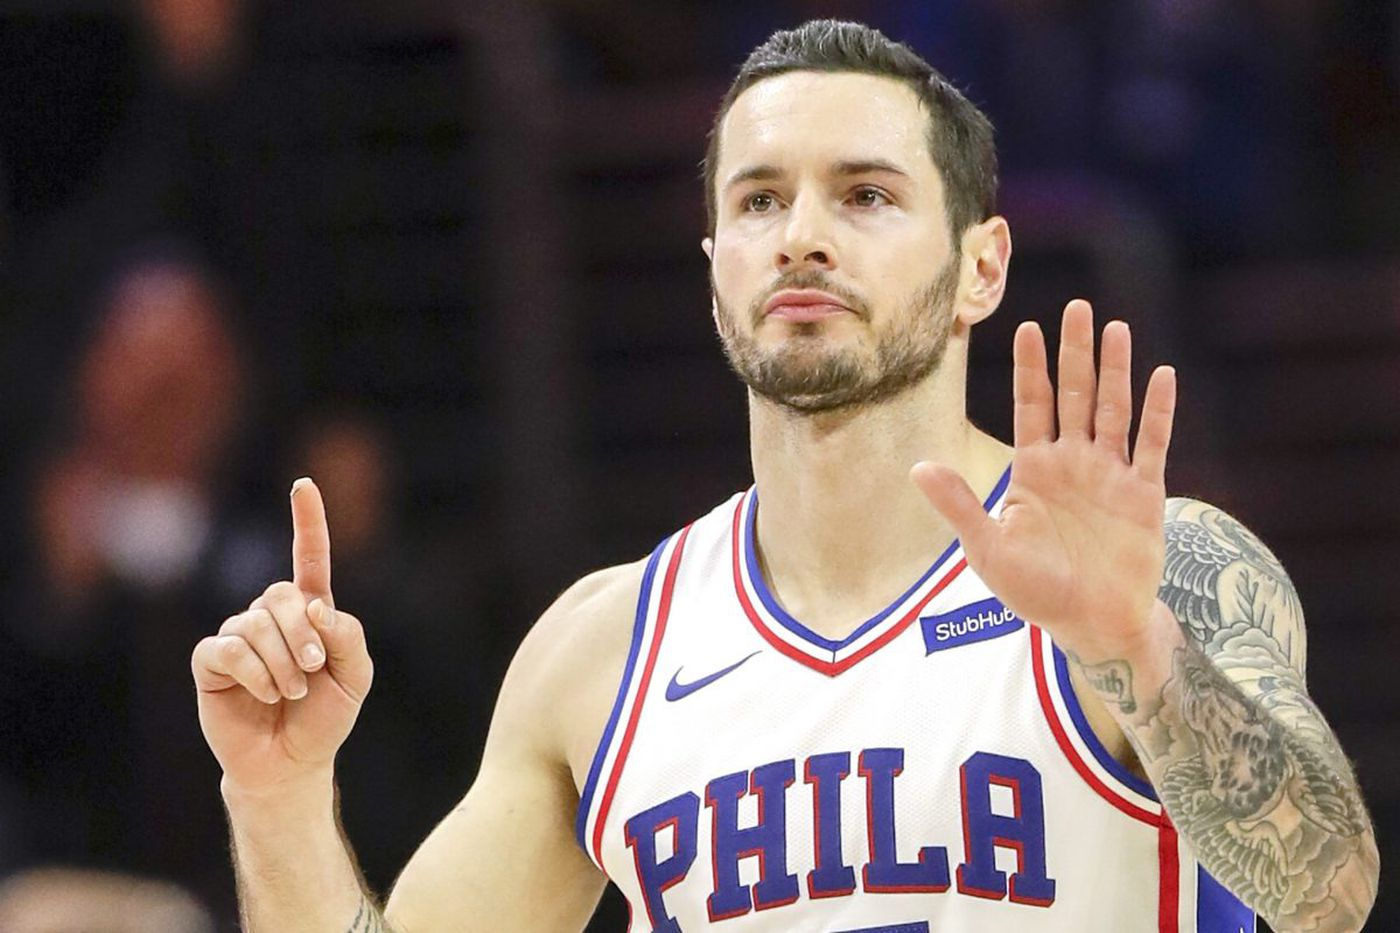 Ebbs and flows: Sixers' JJ Redick knows the routine